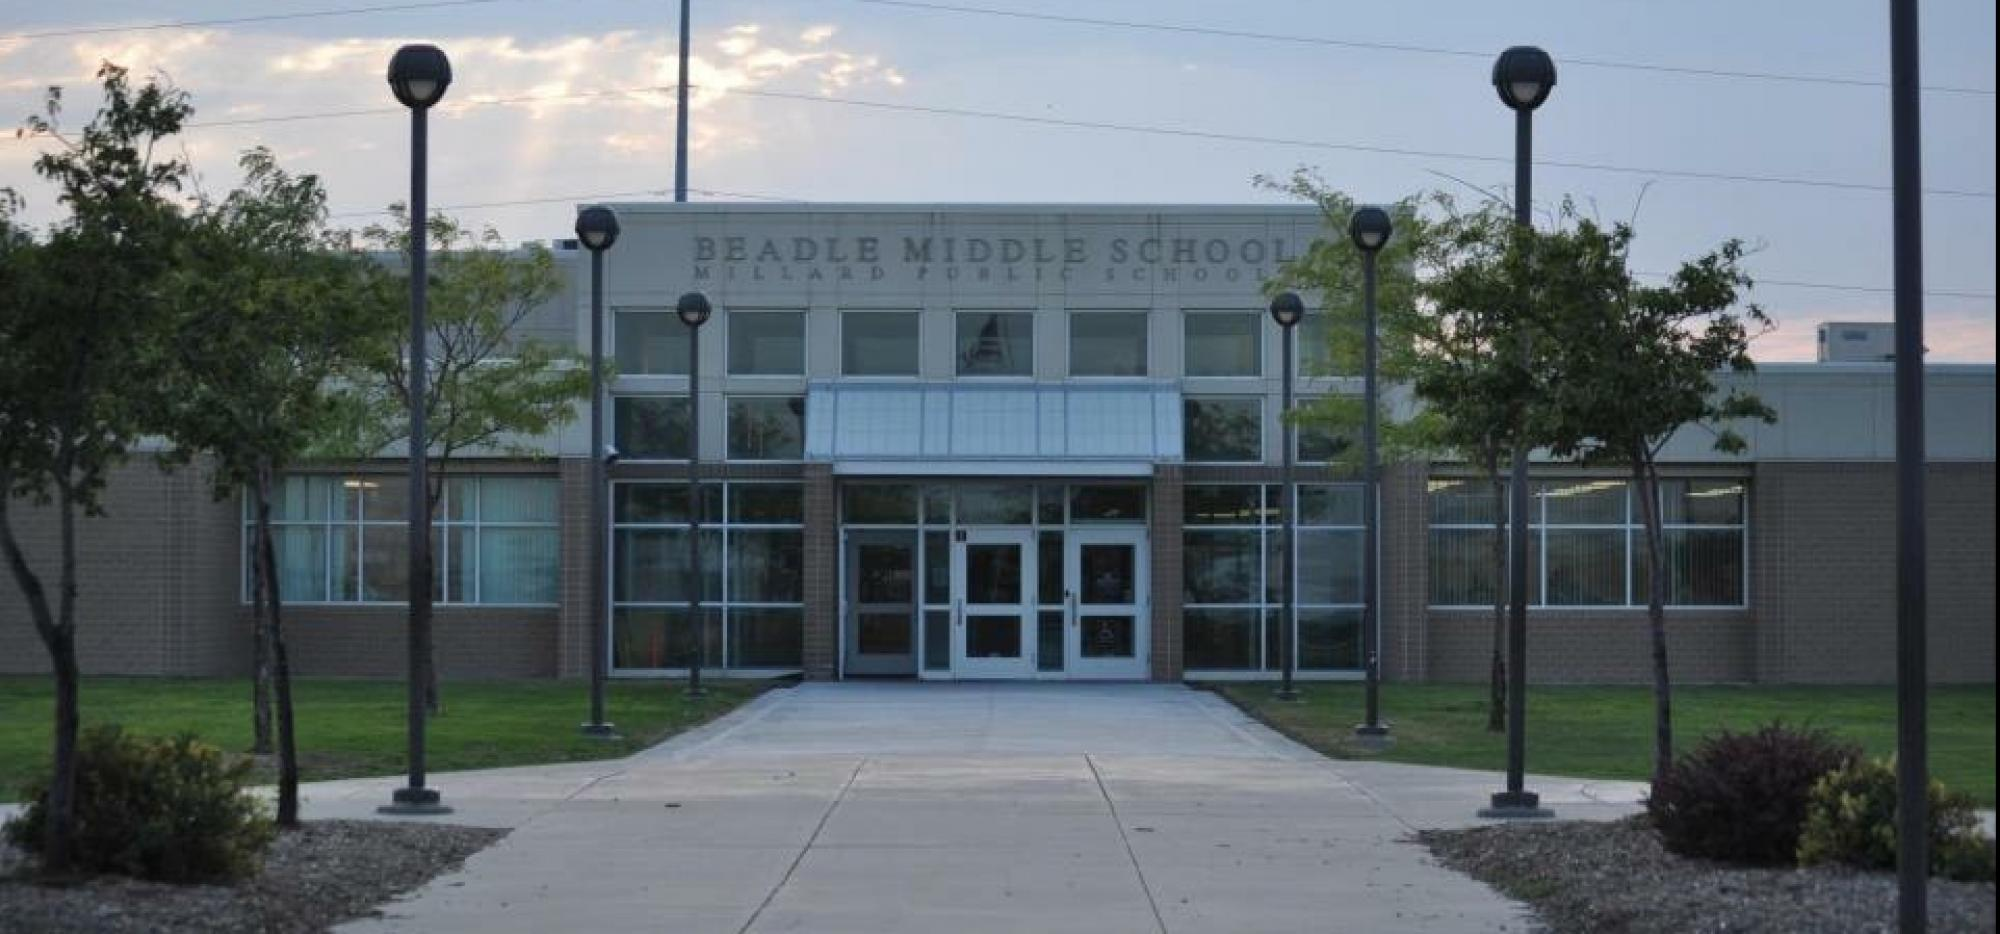 Image of Beadle Middle School